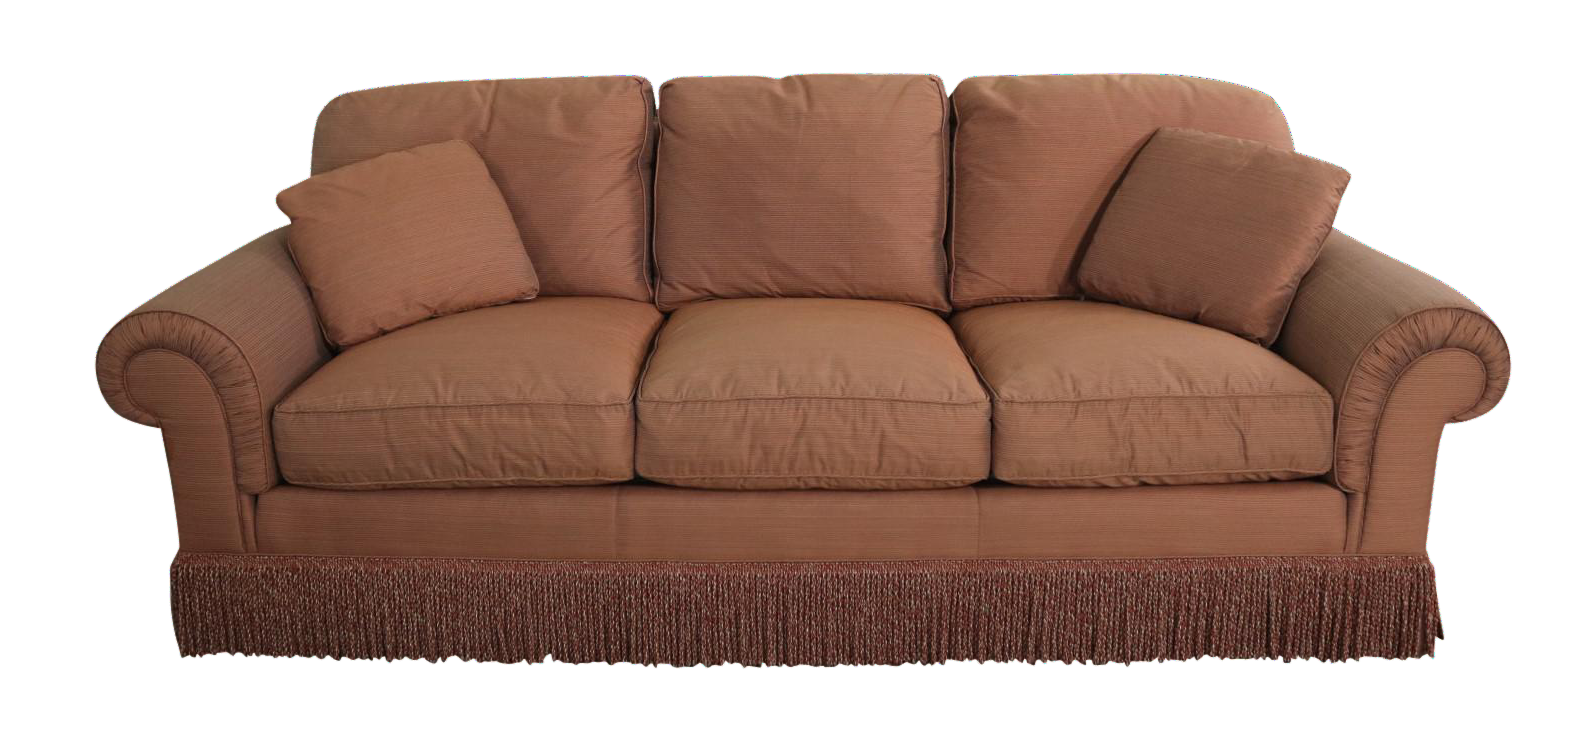 Pair Baker Sofas Lawson Style From The Crown And Tulip Collection  Terracotta | Chairish